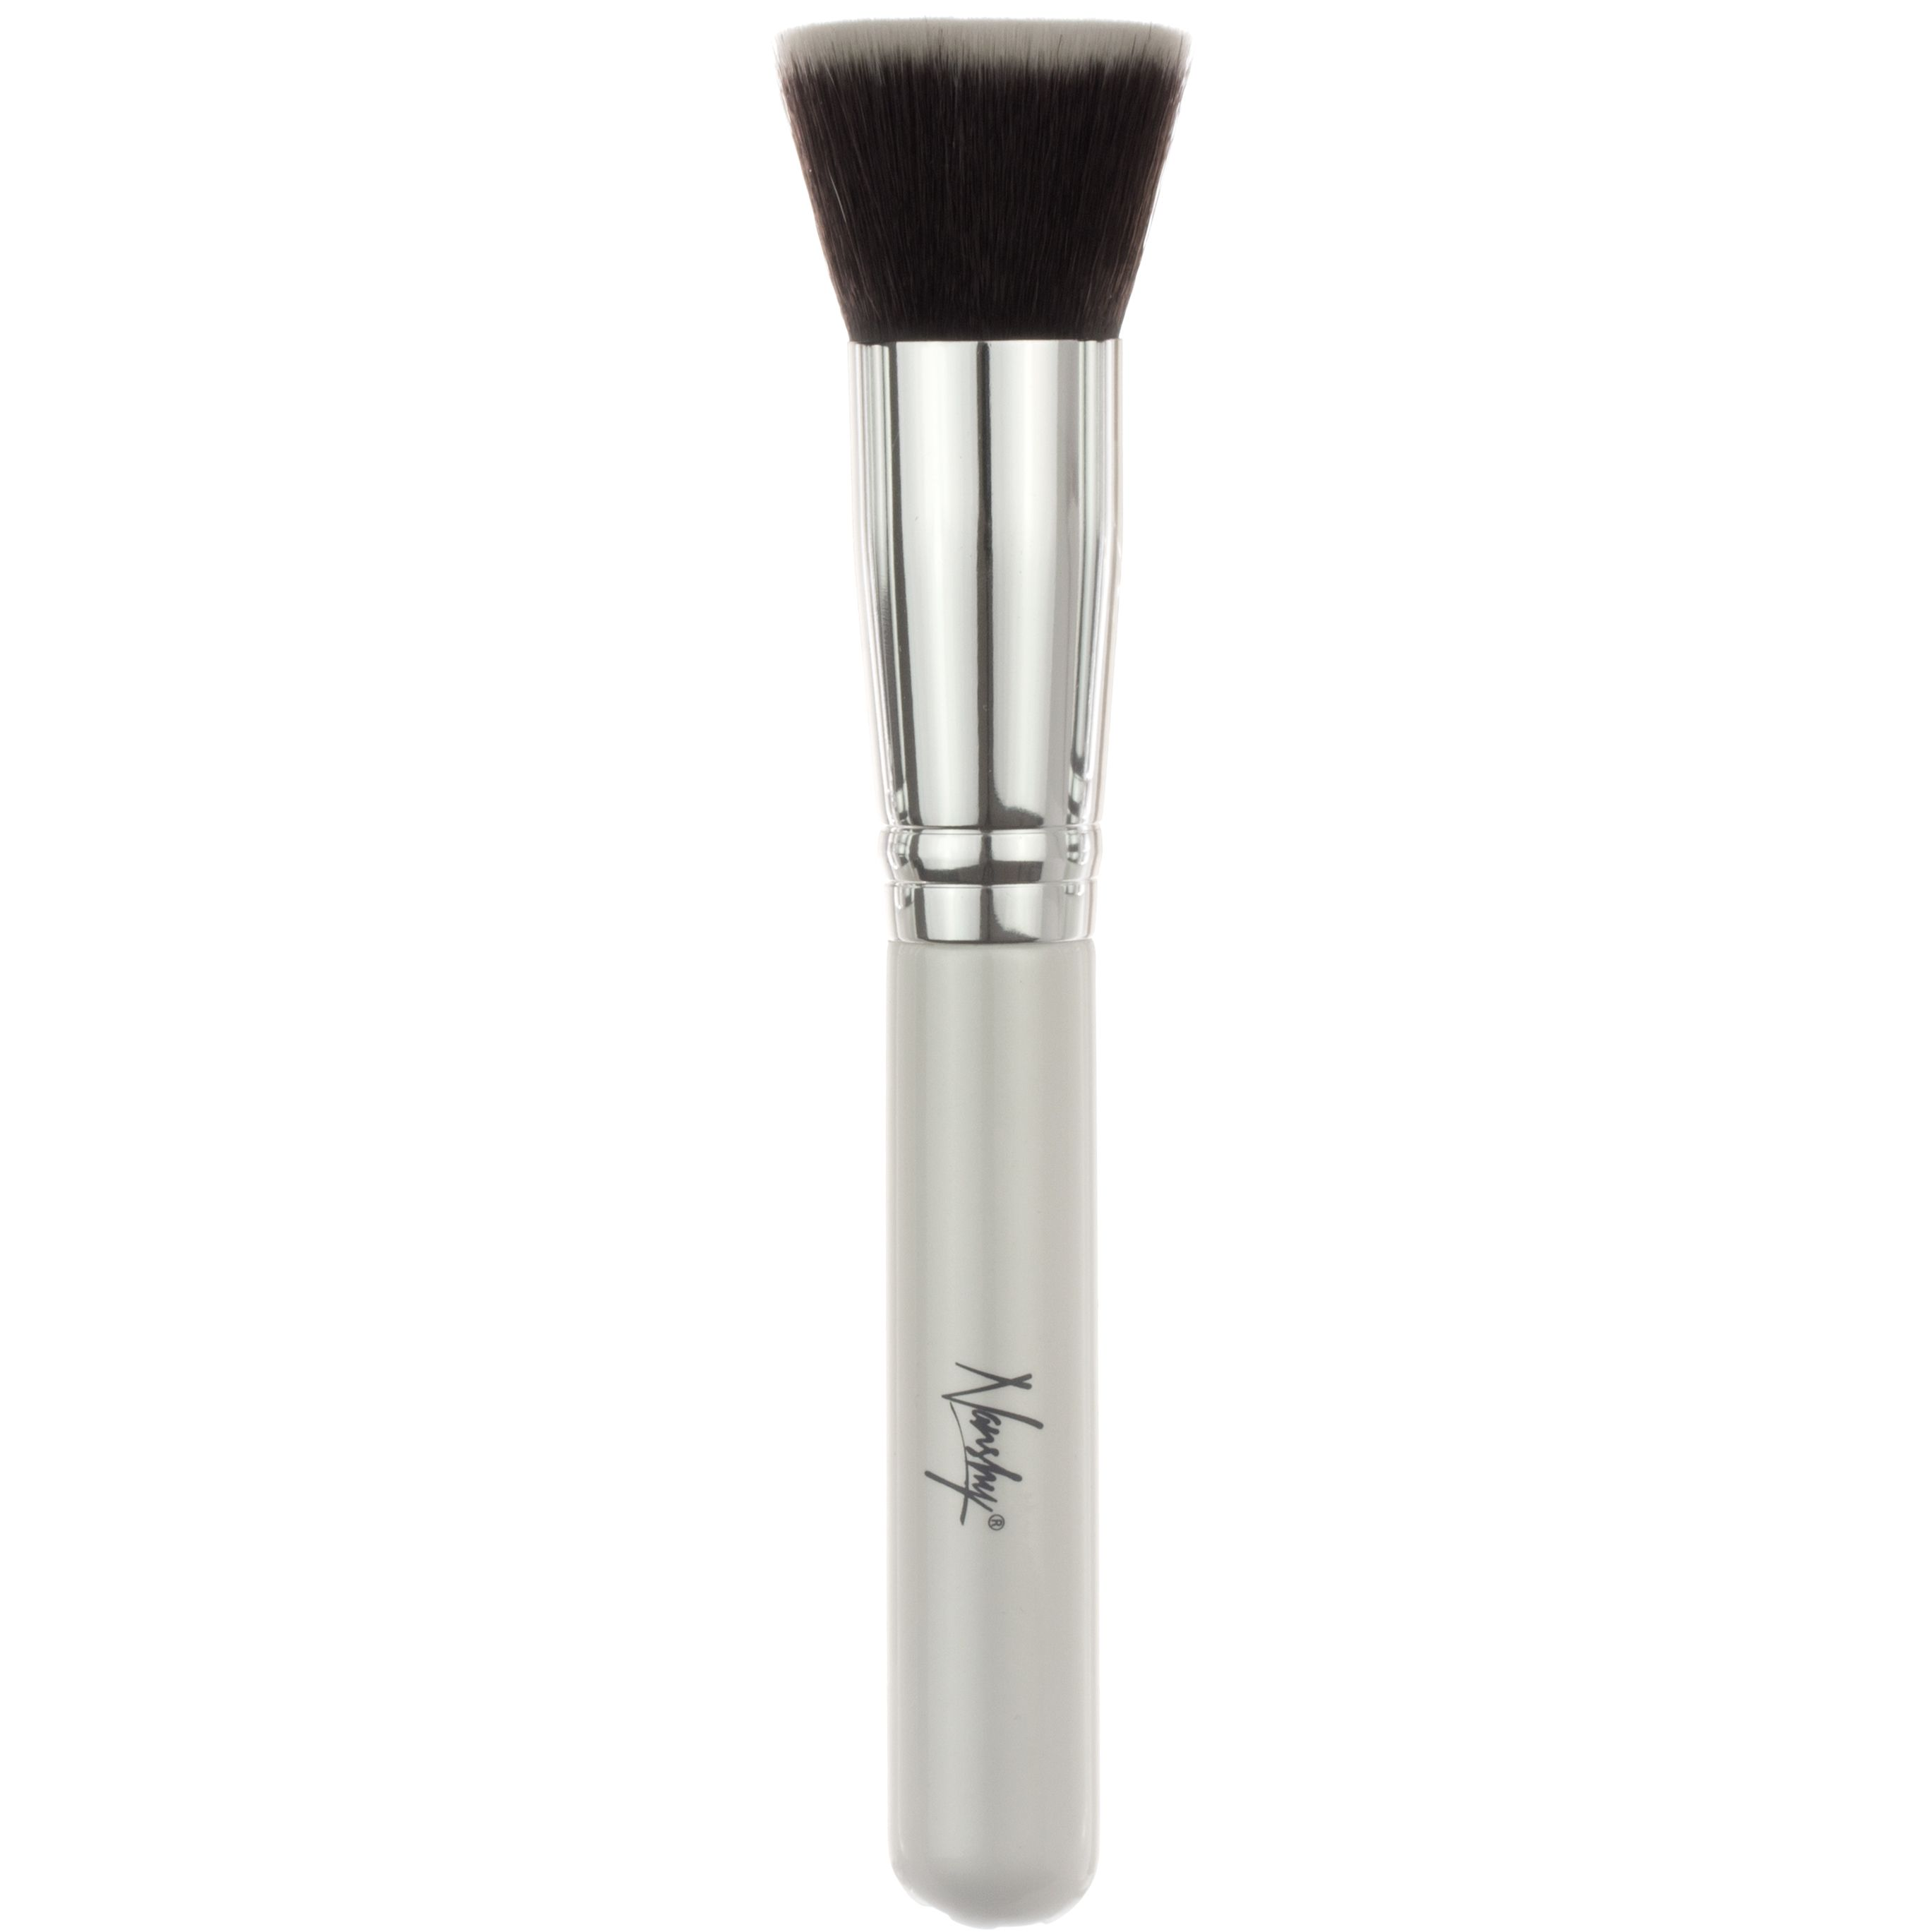 Nanshy Foundation Brushes, Flat, Tapered, Round, Angled